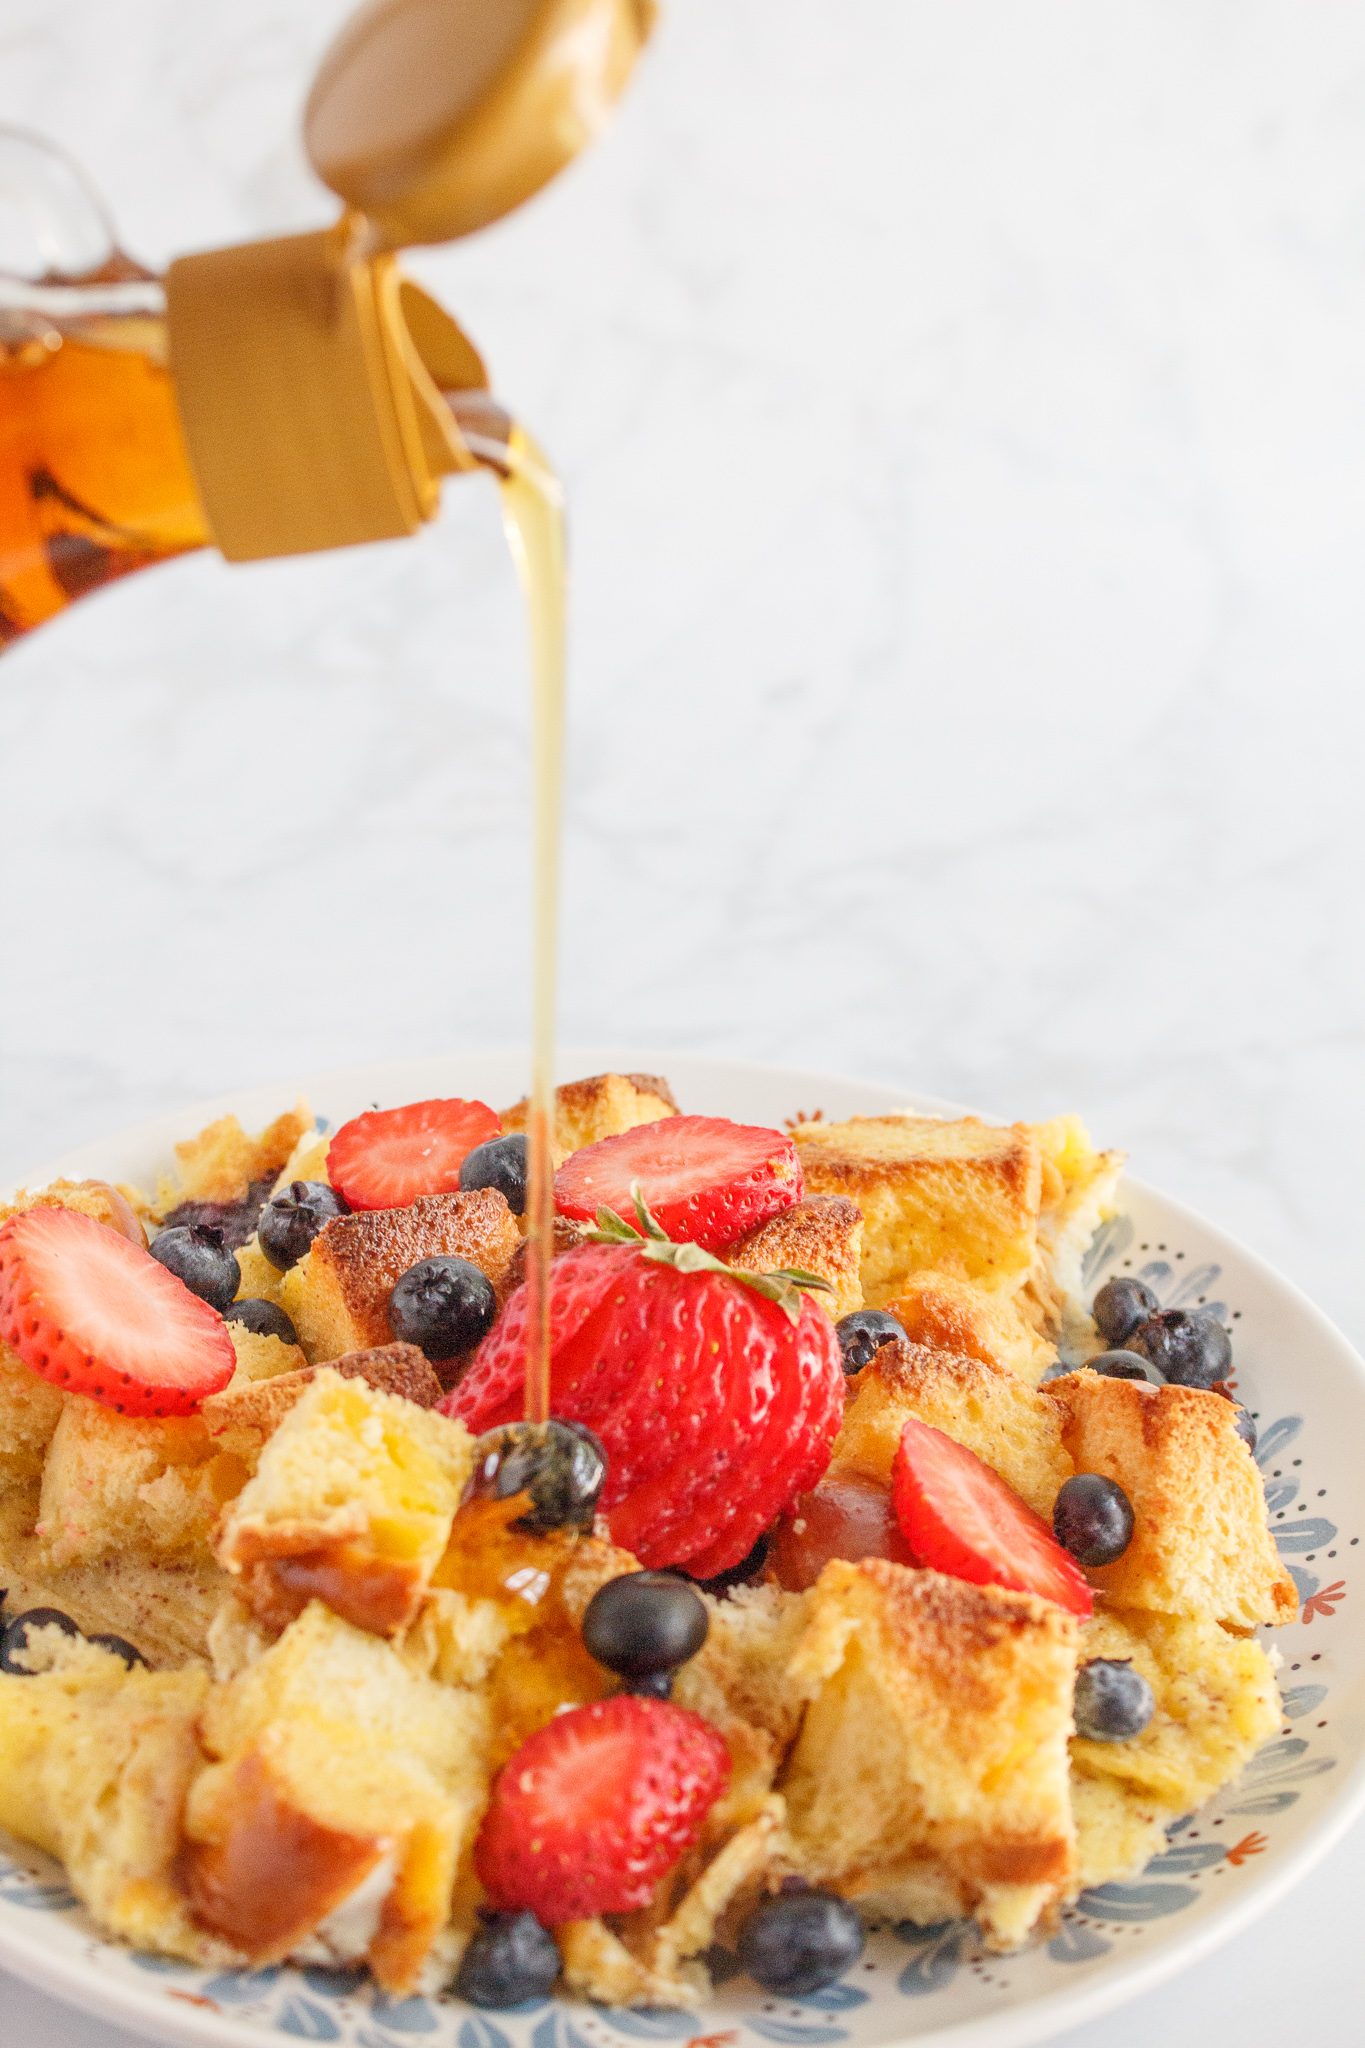 syrup over oven French toast